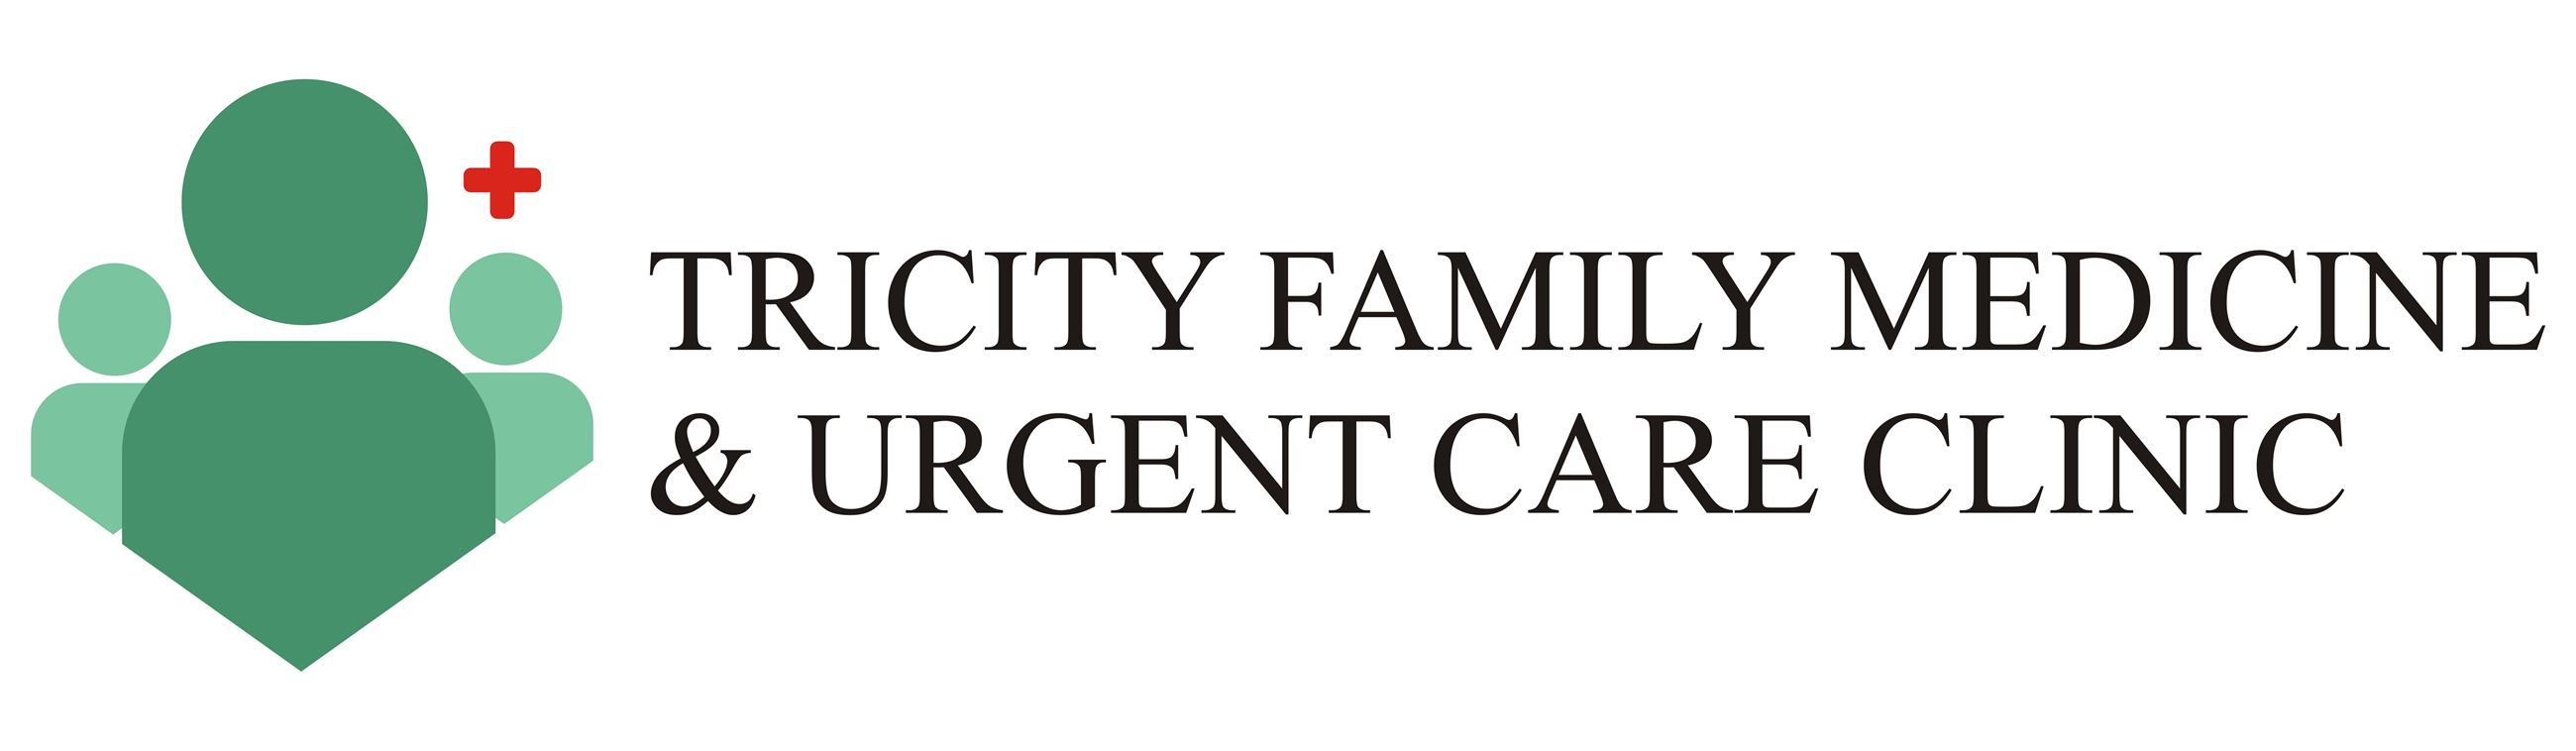 Tricity Family Medicine and Urgent Care Clinic